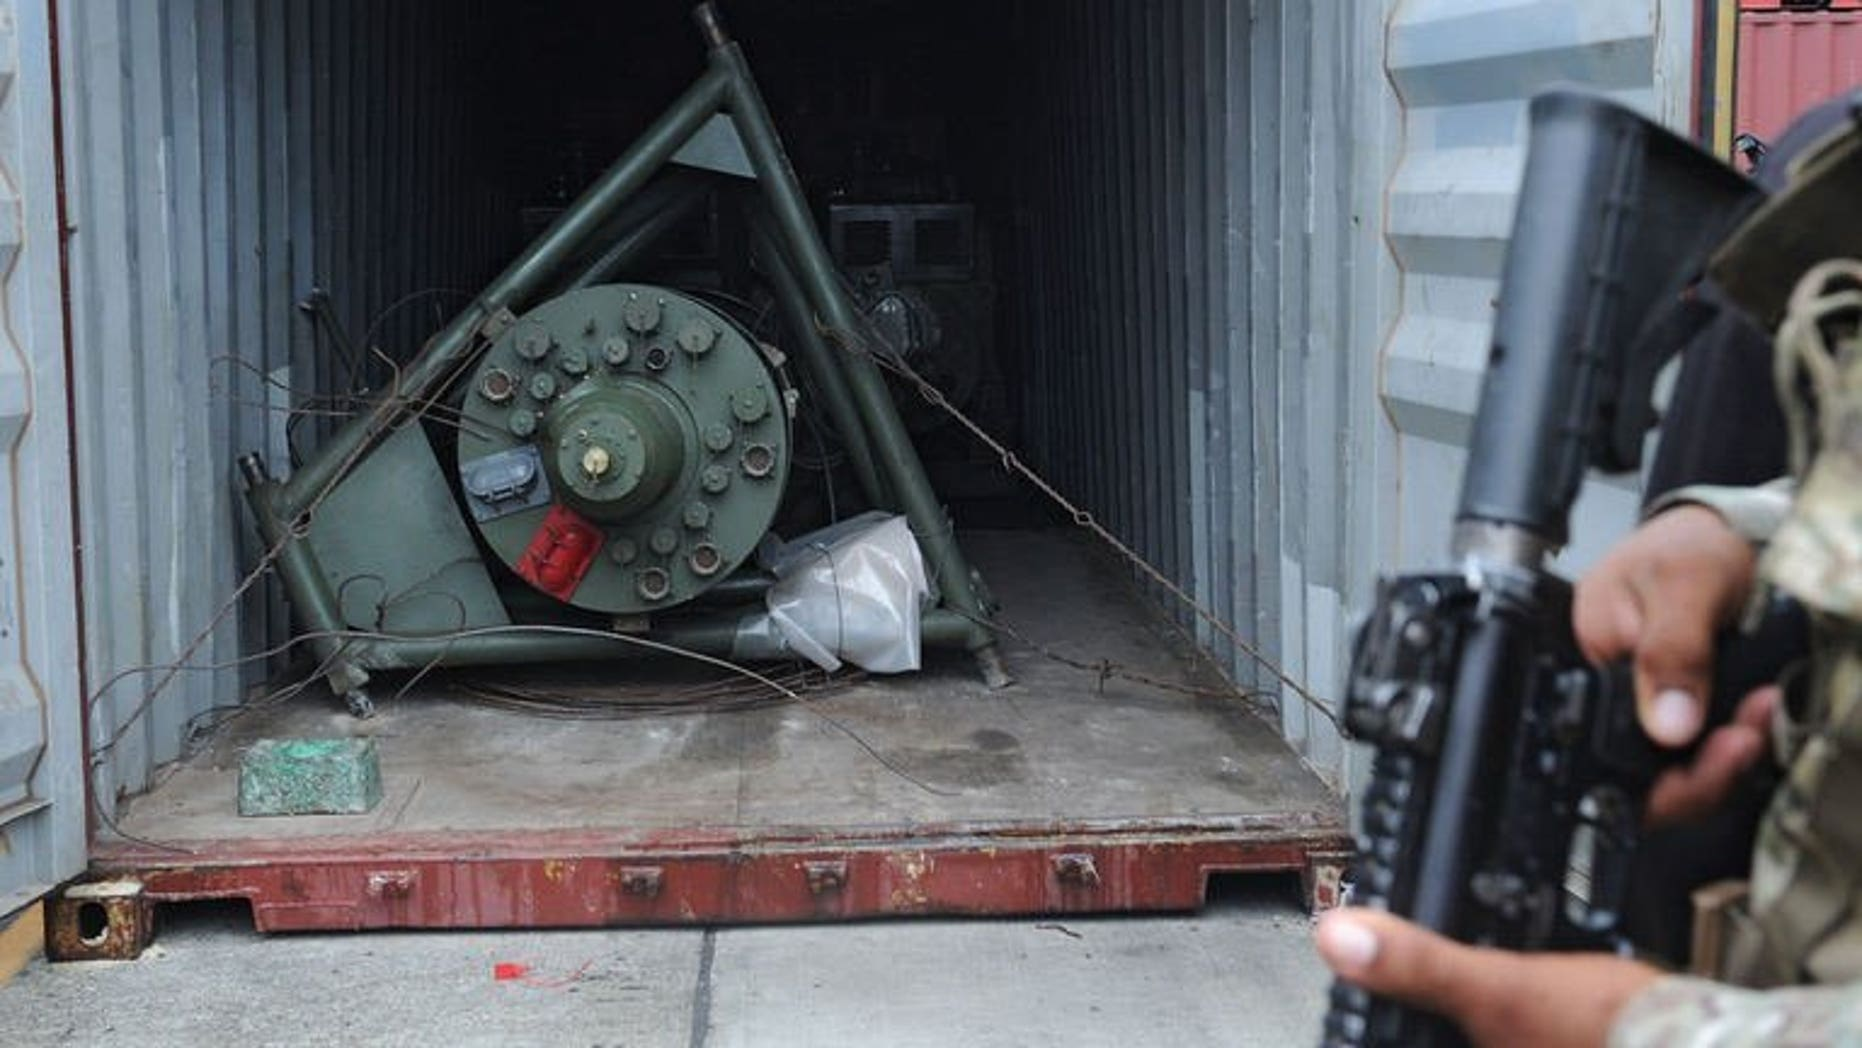 A Panamanian soldier guards a container on the North Korean ship Chong Chon Gang, in which Soviet-era weaponry was found, at Manzanillo Port in Colon, Panama, on July 17, 2013. North Korean sailors whose dilapidated ship was halted near the Panama Canal and found to be carrying the military equipment could face up to six years in jail, a prosecutor has said.